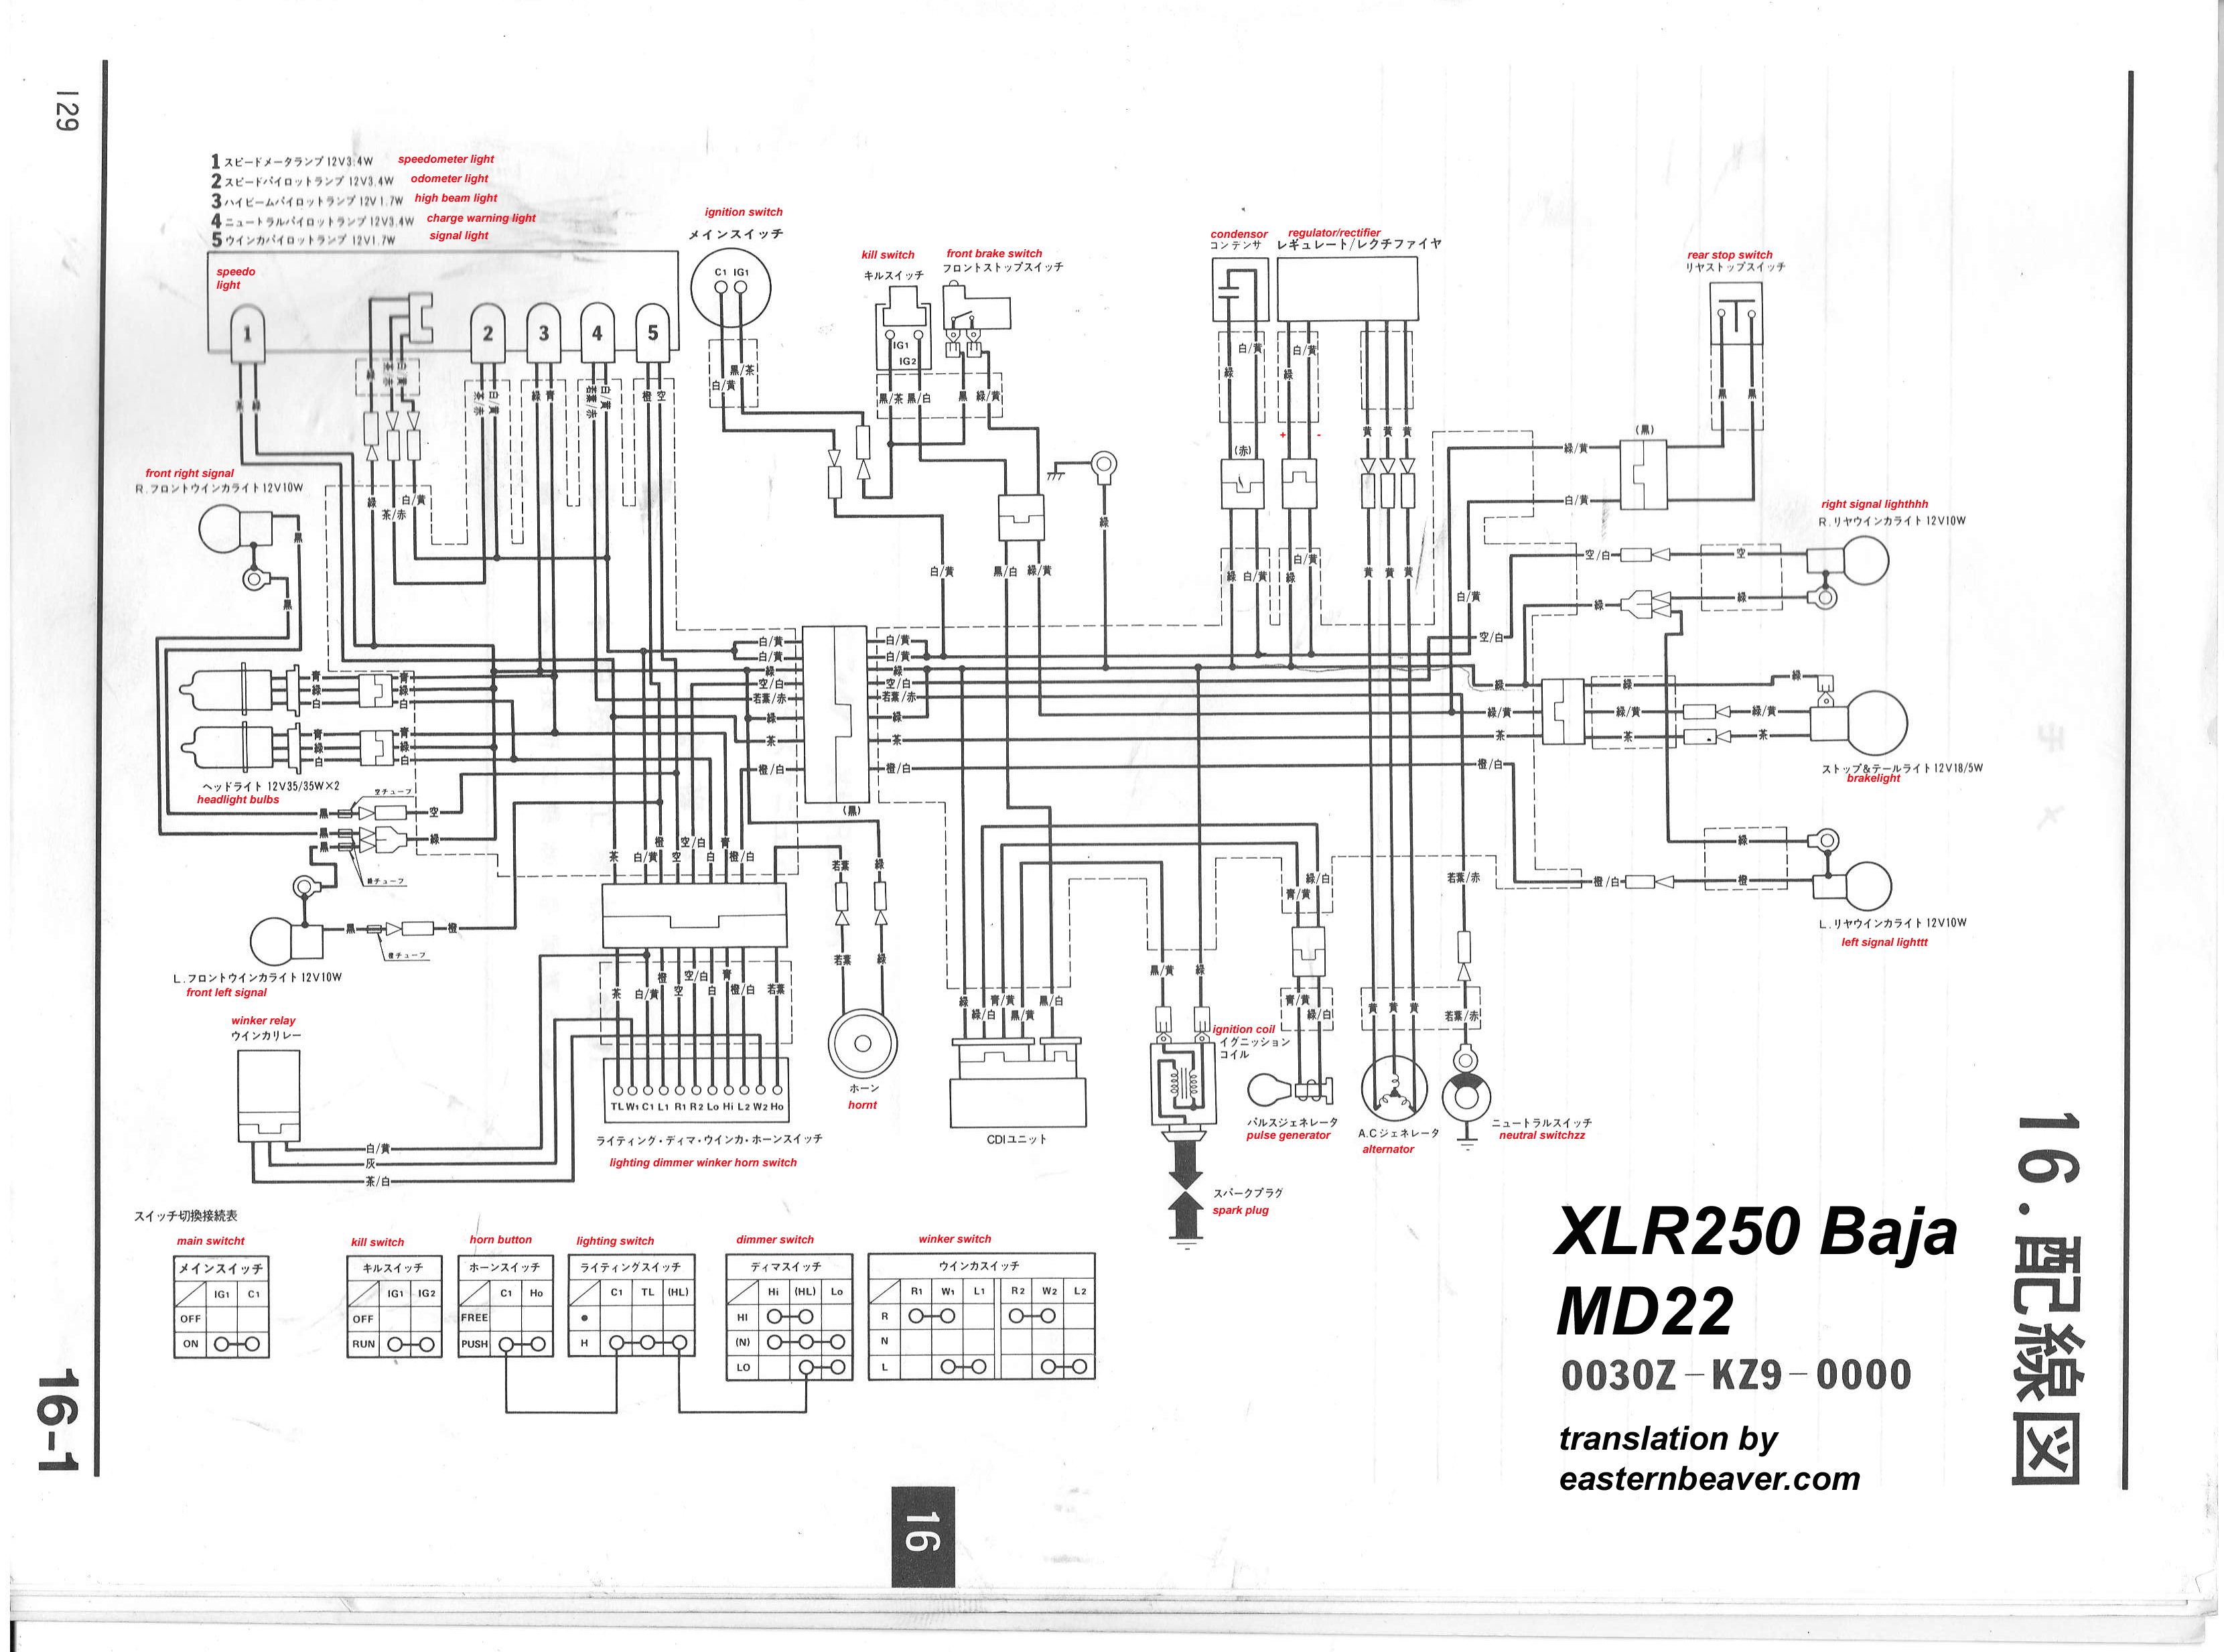 XLR250_Baja Wiring Diagram MD22 xlr jack wiring diagram the wiring diagram readingrat net xr400 wiring diagram at bakdesigns.co